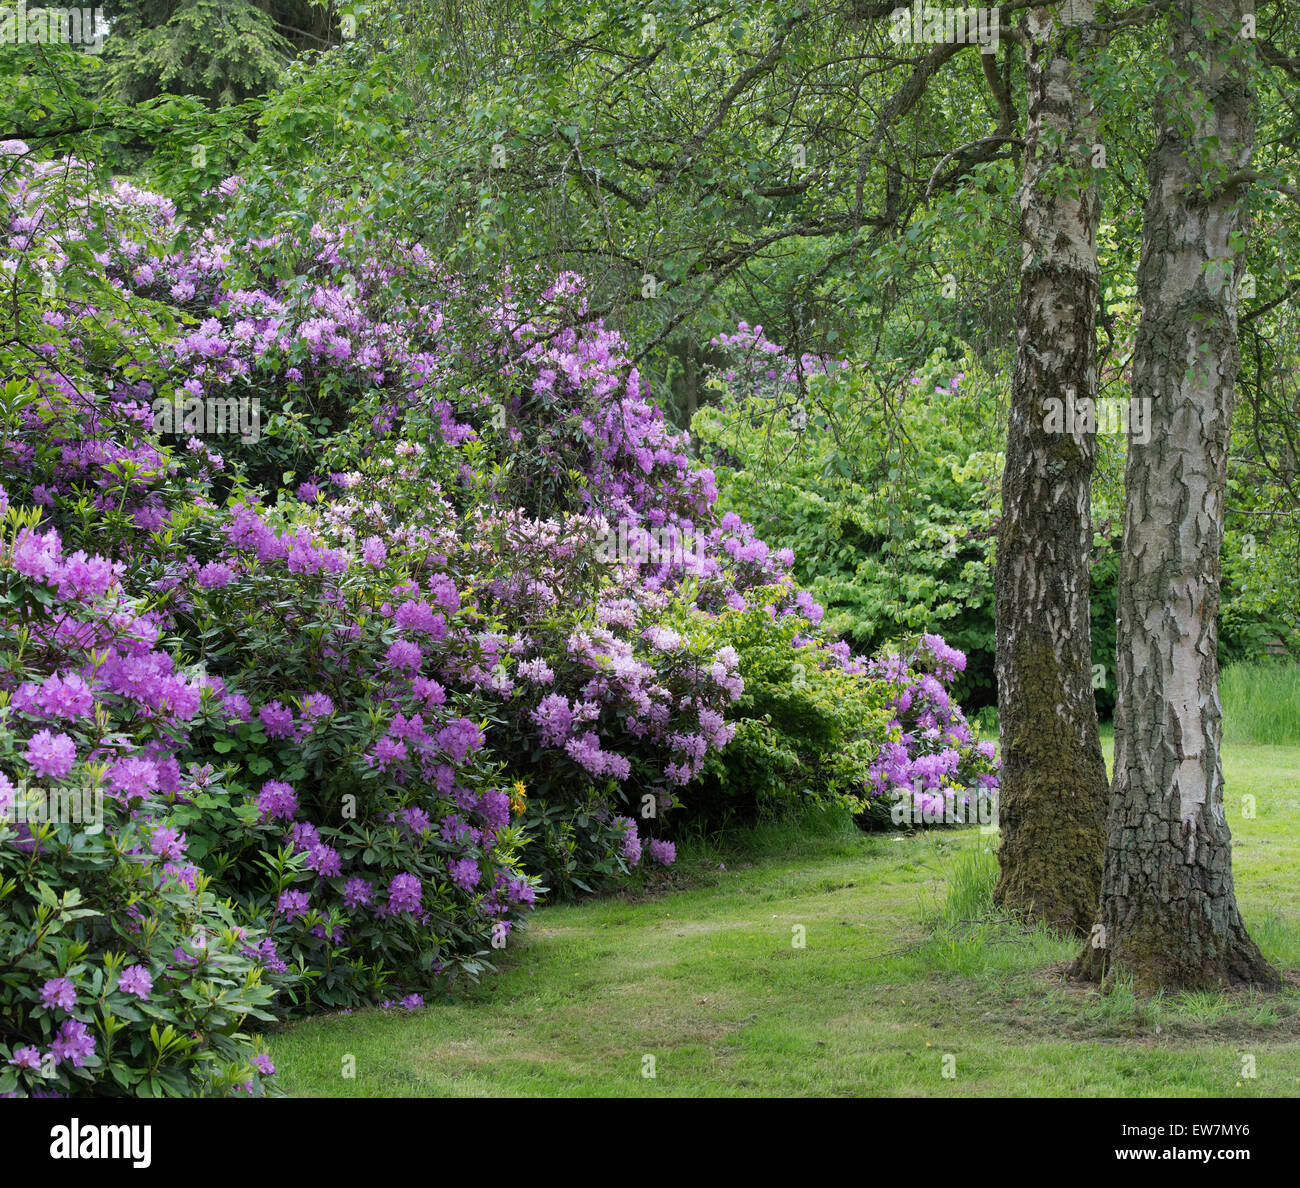 Rhododendron Bushes In Flower In An English Garden Stock Photo